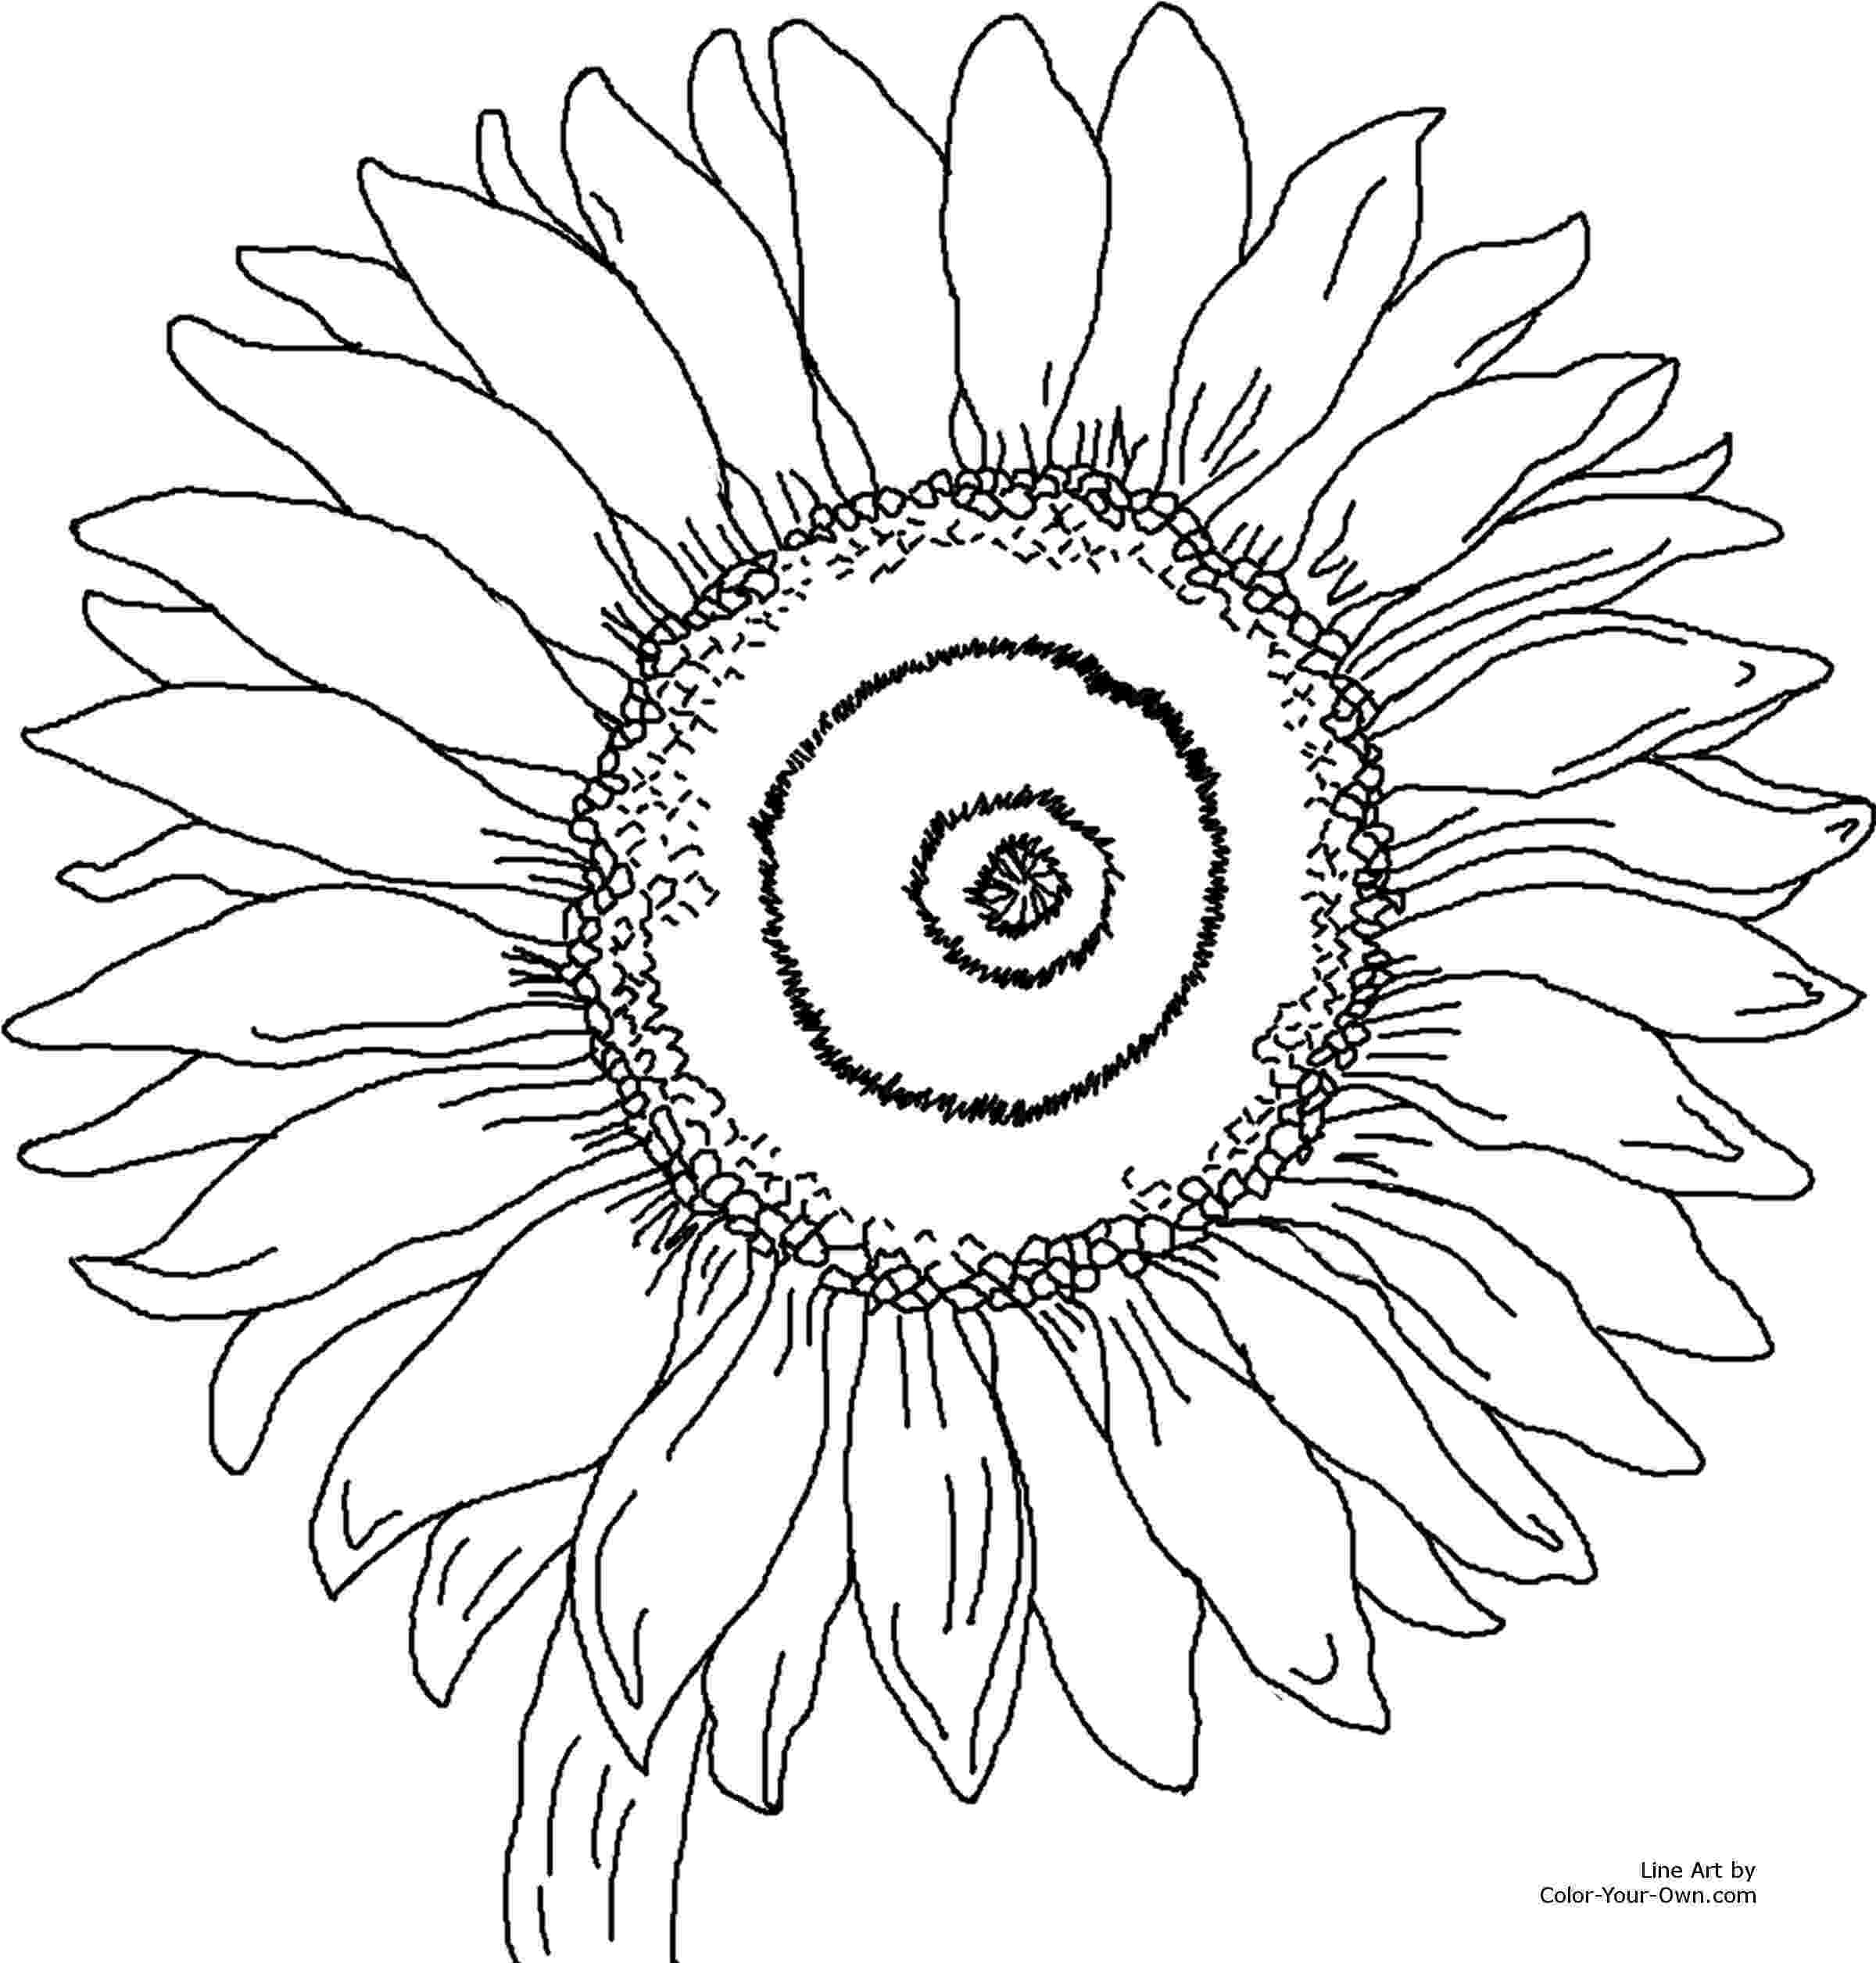 printable summer coloring pages for adults summer coloring pages all collectable by me best season coloring pages summer printable for adults